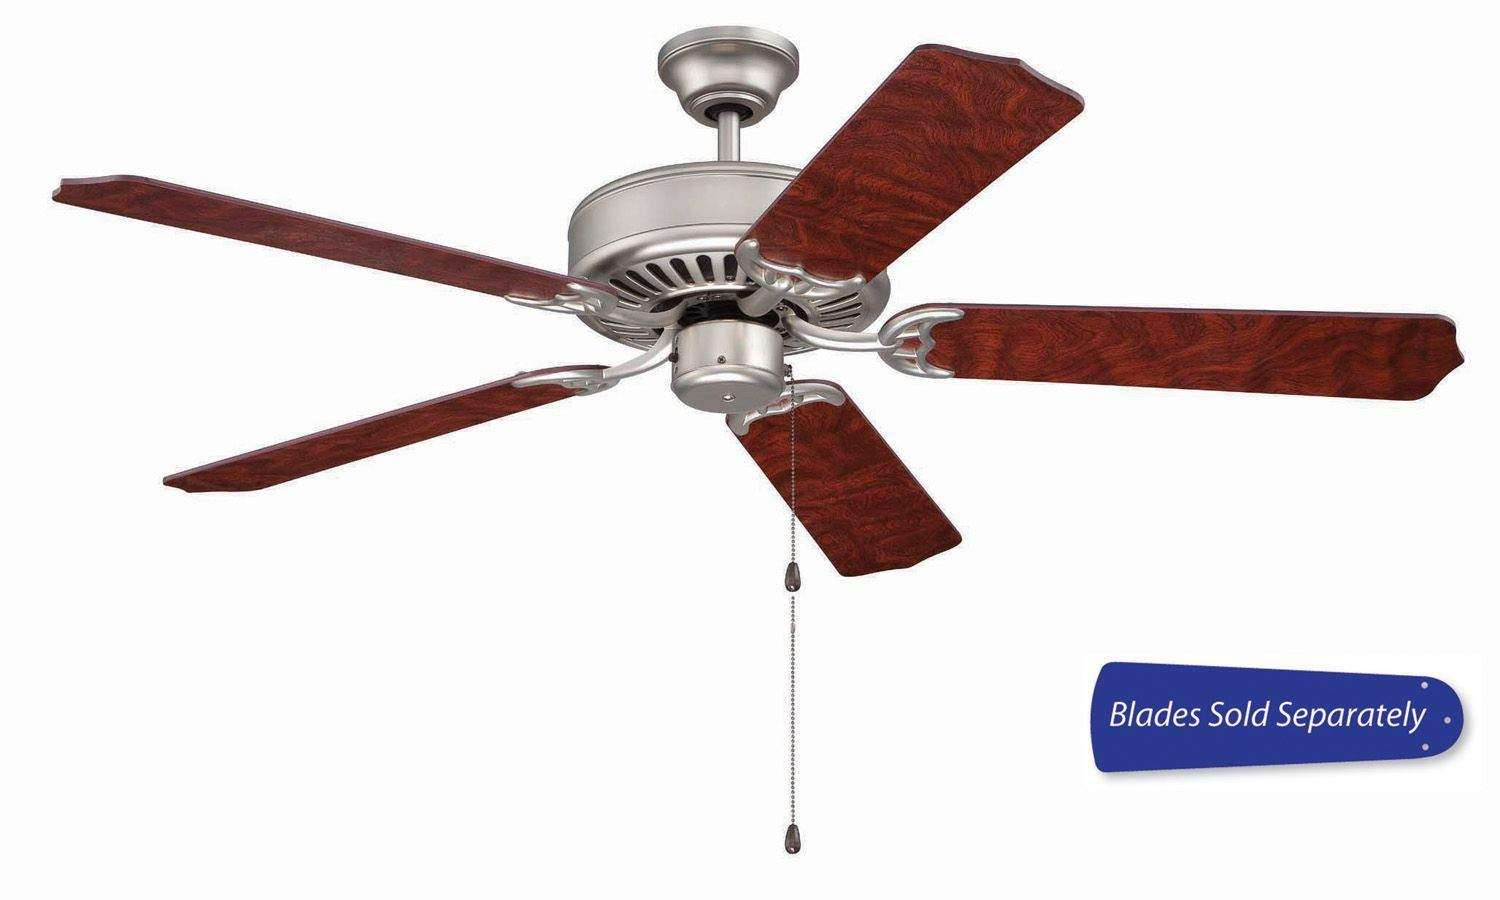 Craftmade Pro Builder Ceiling Fan Model C52BN in Brushed Nickel